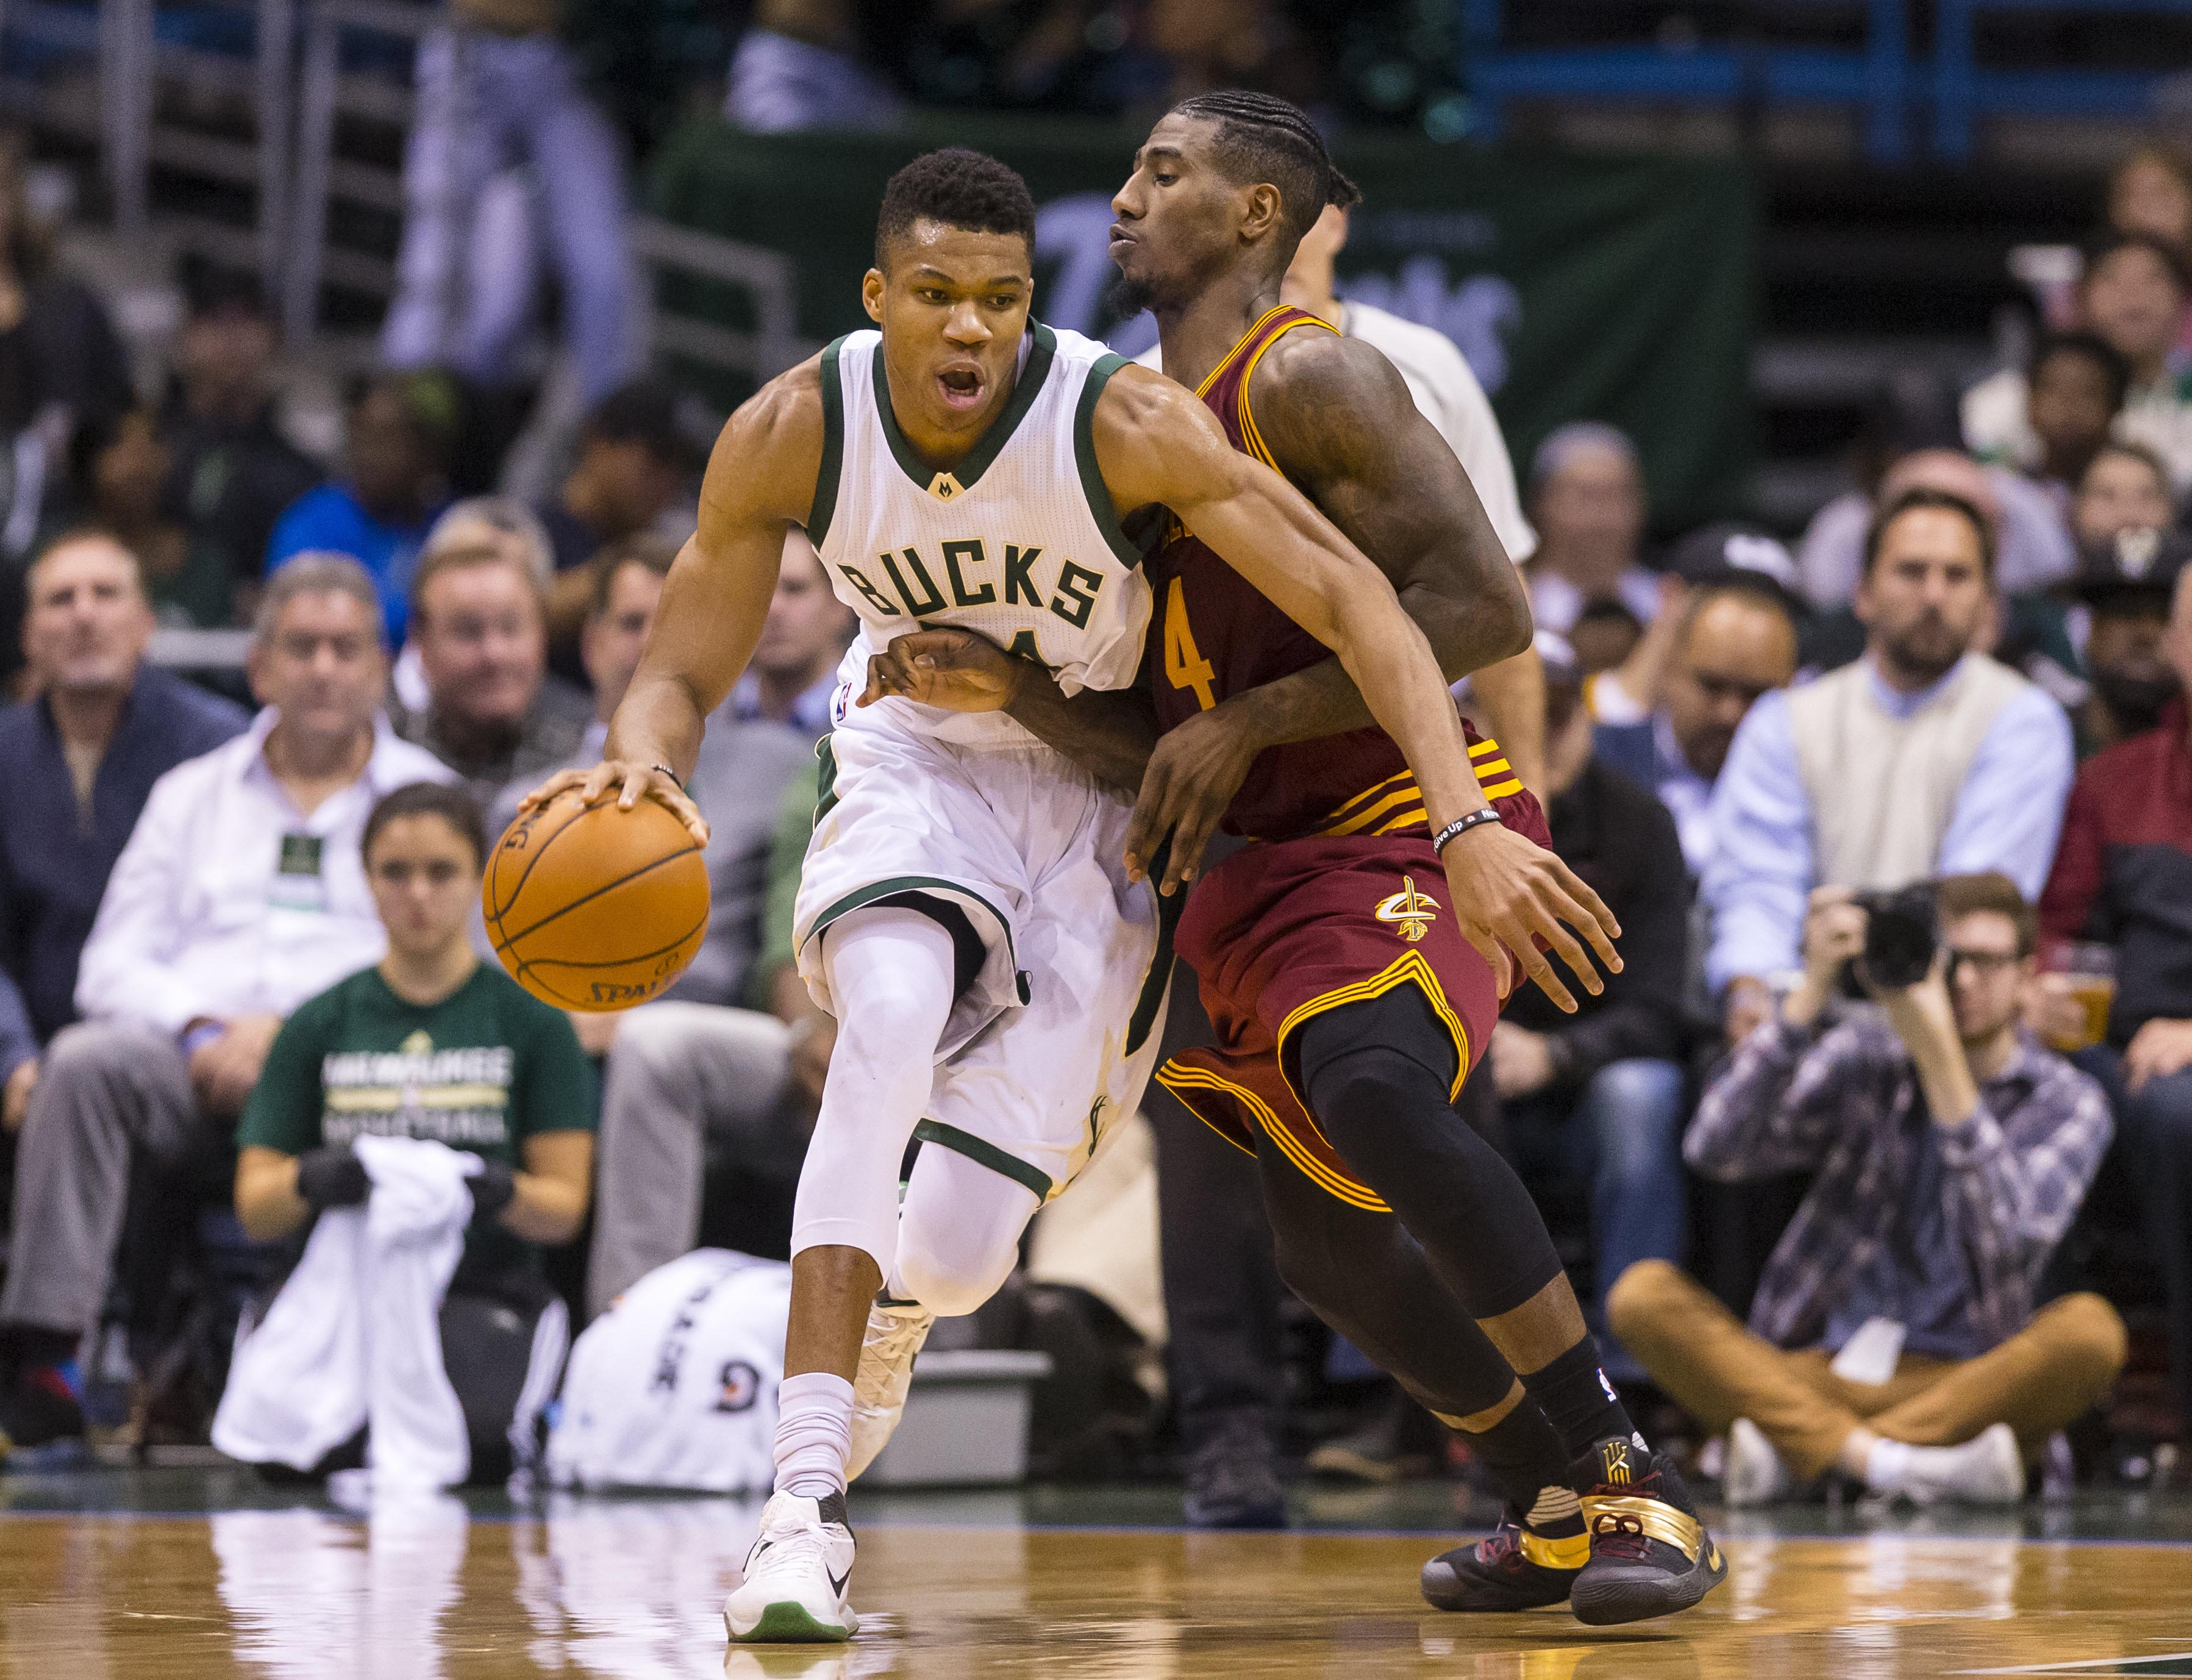 9712331-nba-cleveland-cavaliers-at-milwaukee-bucks